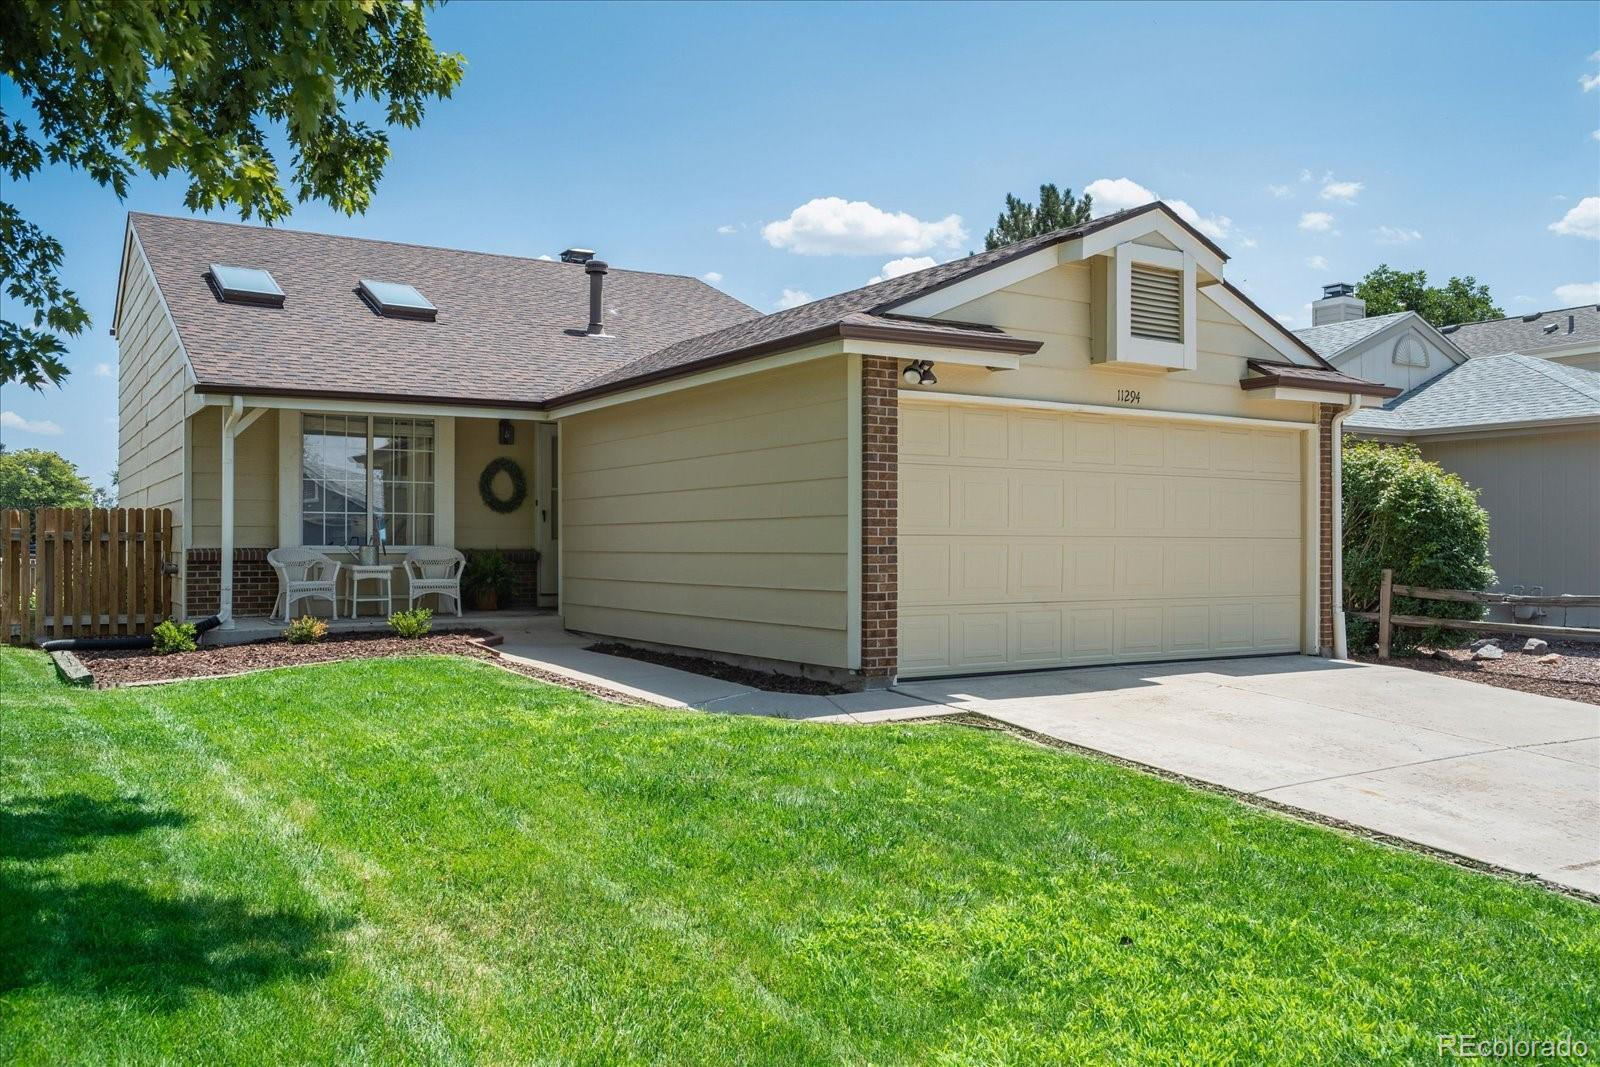 11294 Forest Drive, Thornton, CO 80233 - #: 3048511